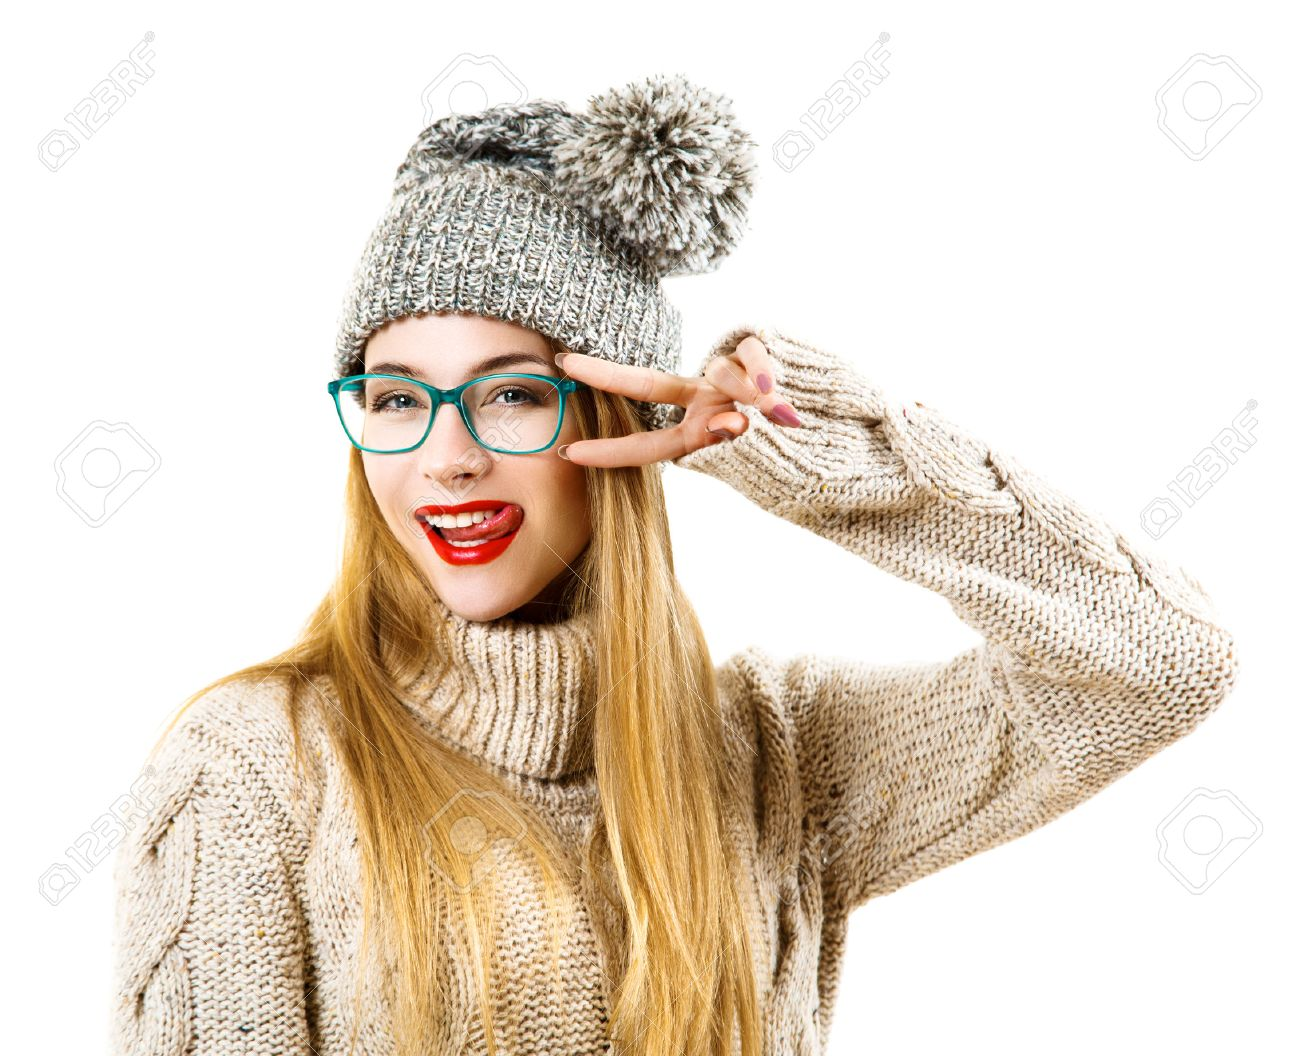 Funny Hipster Girl in Knitted Sweater and Beanie Hat Going Crazy. Isolated on White. Trendy Casual Fashion Outfit in Winter. - 62735398